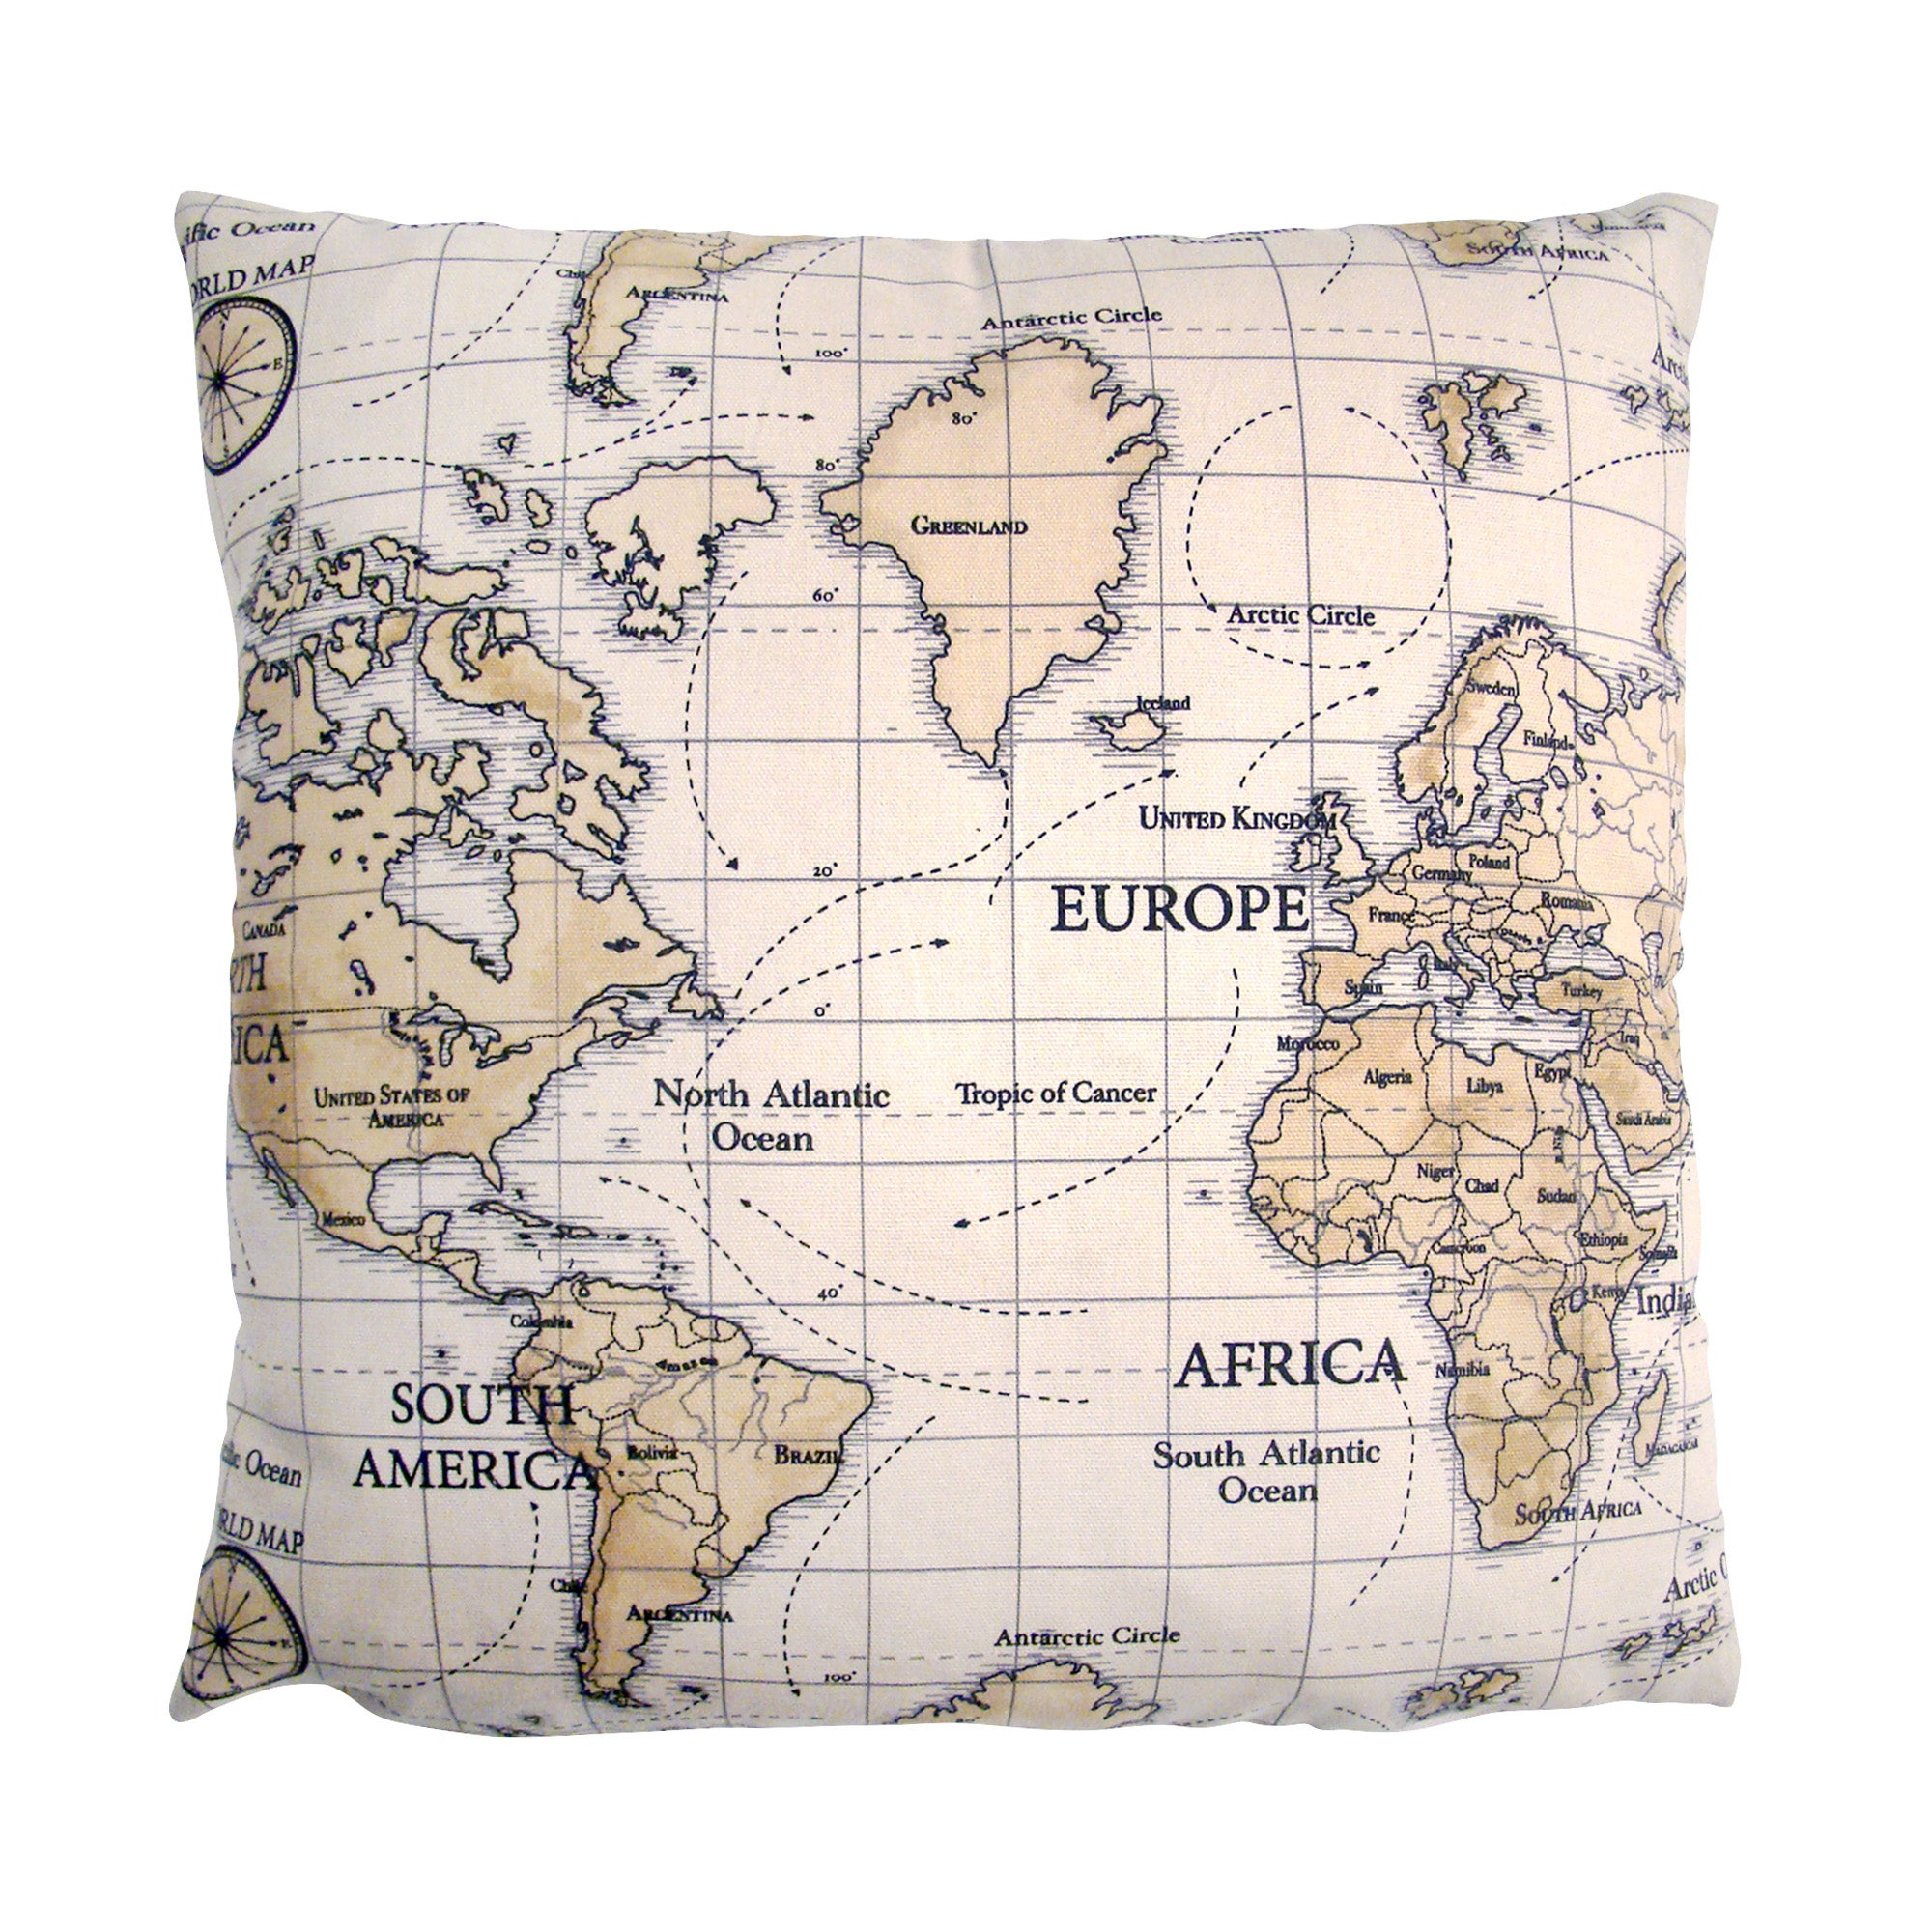 Final year research travelling reviewing cushions 231214 etsy around the world vintage travel themed cushion cover 499 gumiabroncs Choice Image